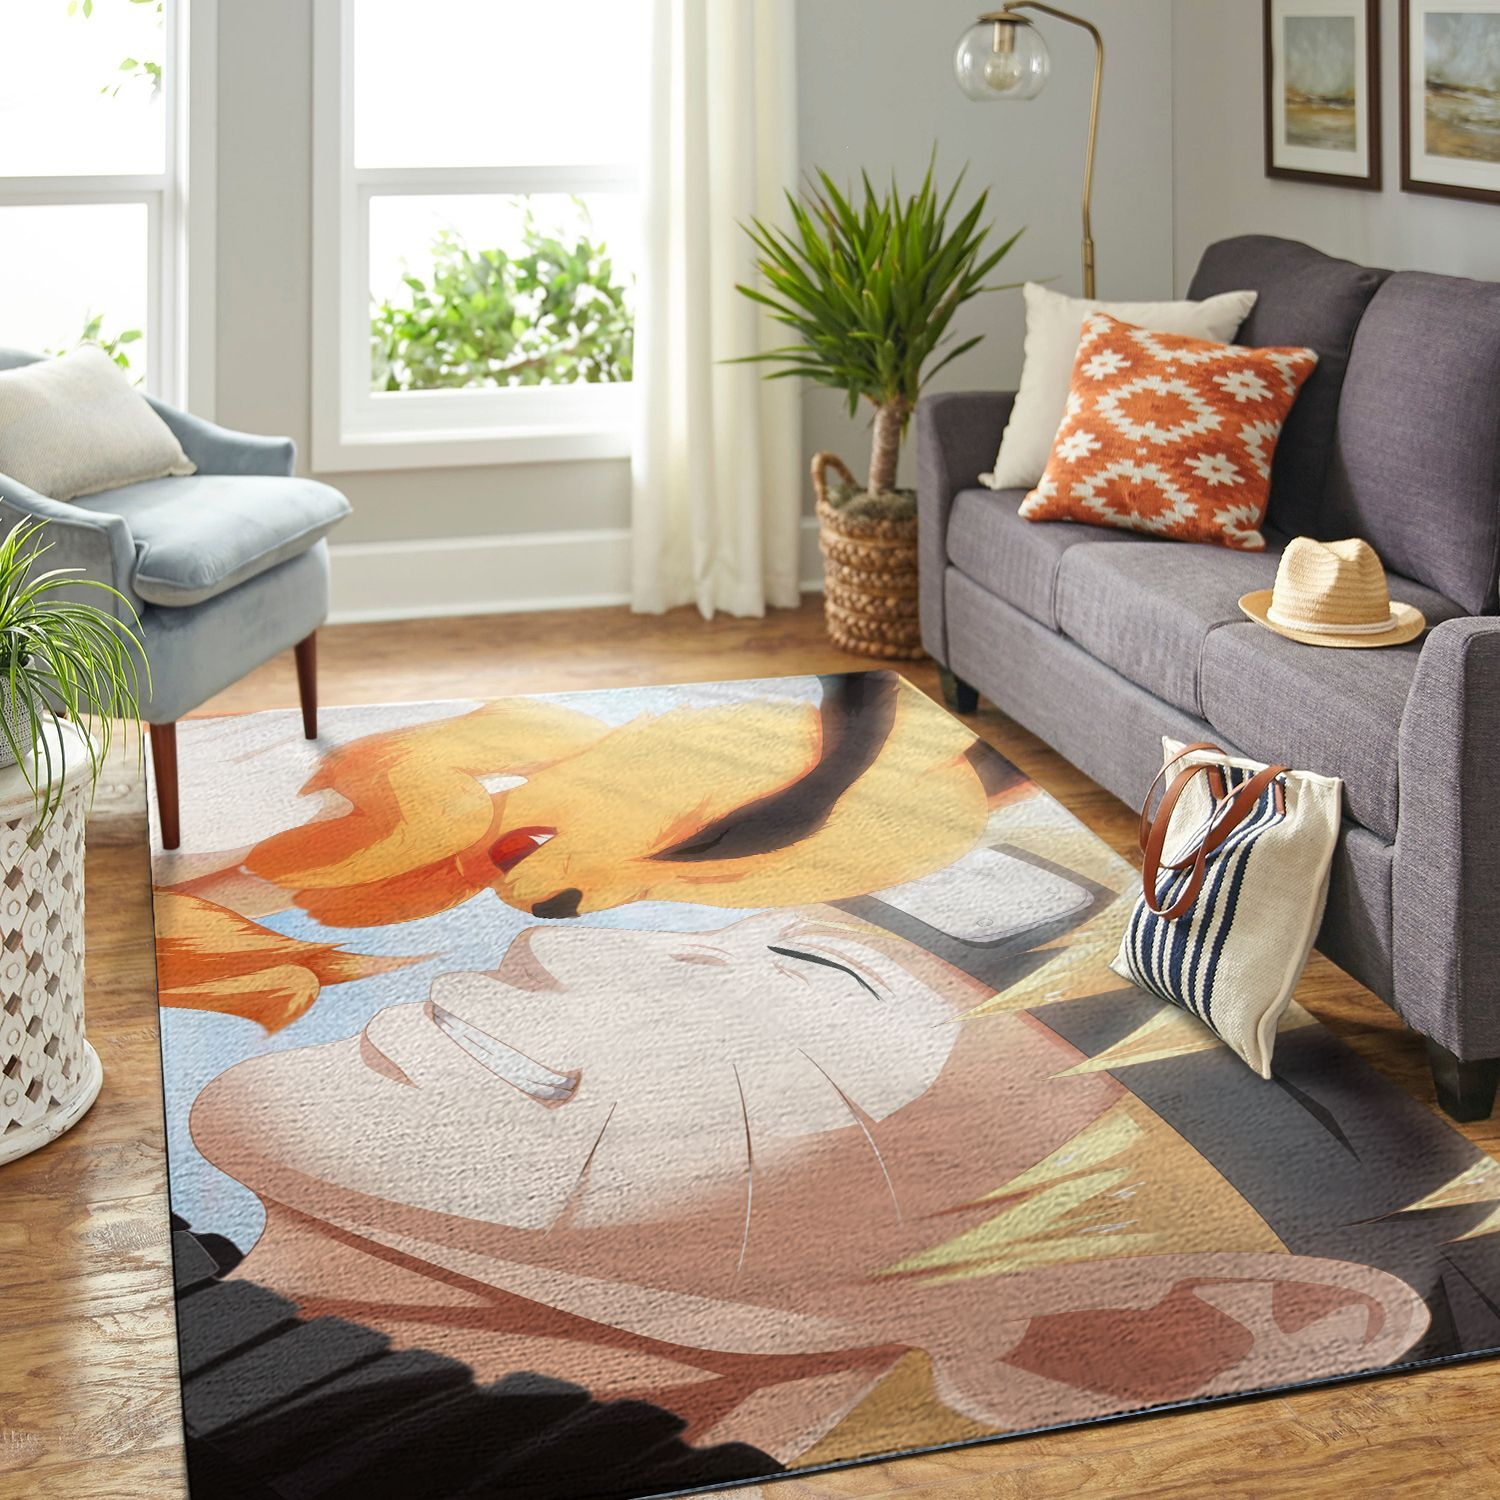 Amazon Naruto Themed Living Room Area No6359 Rug